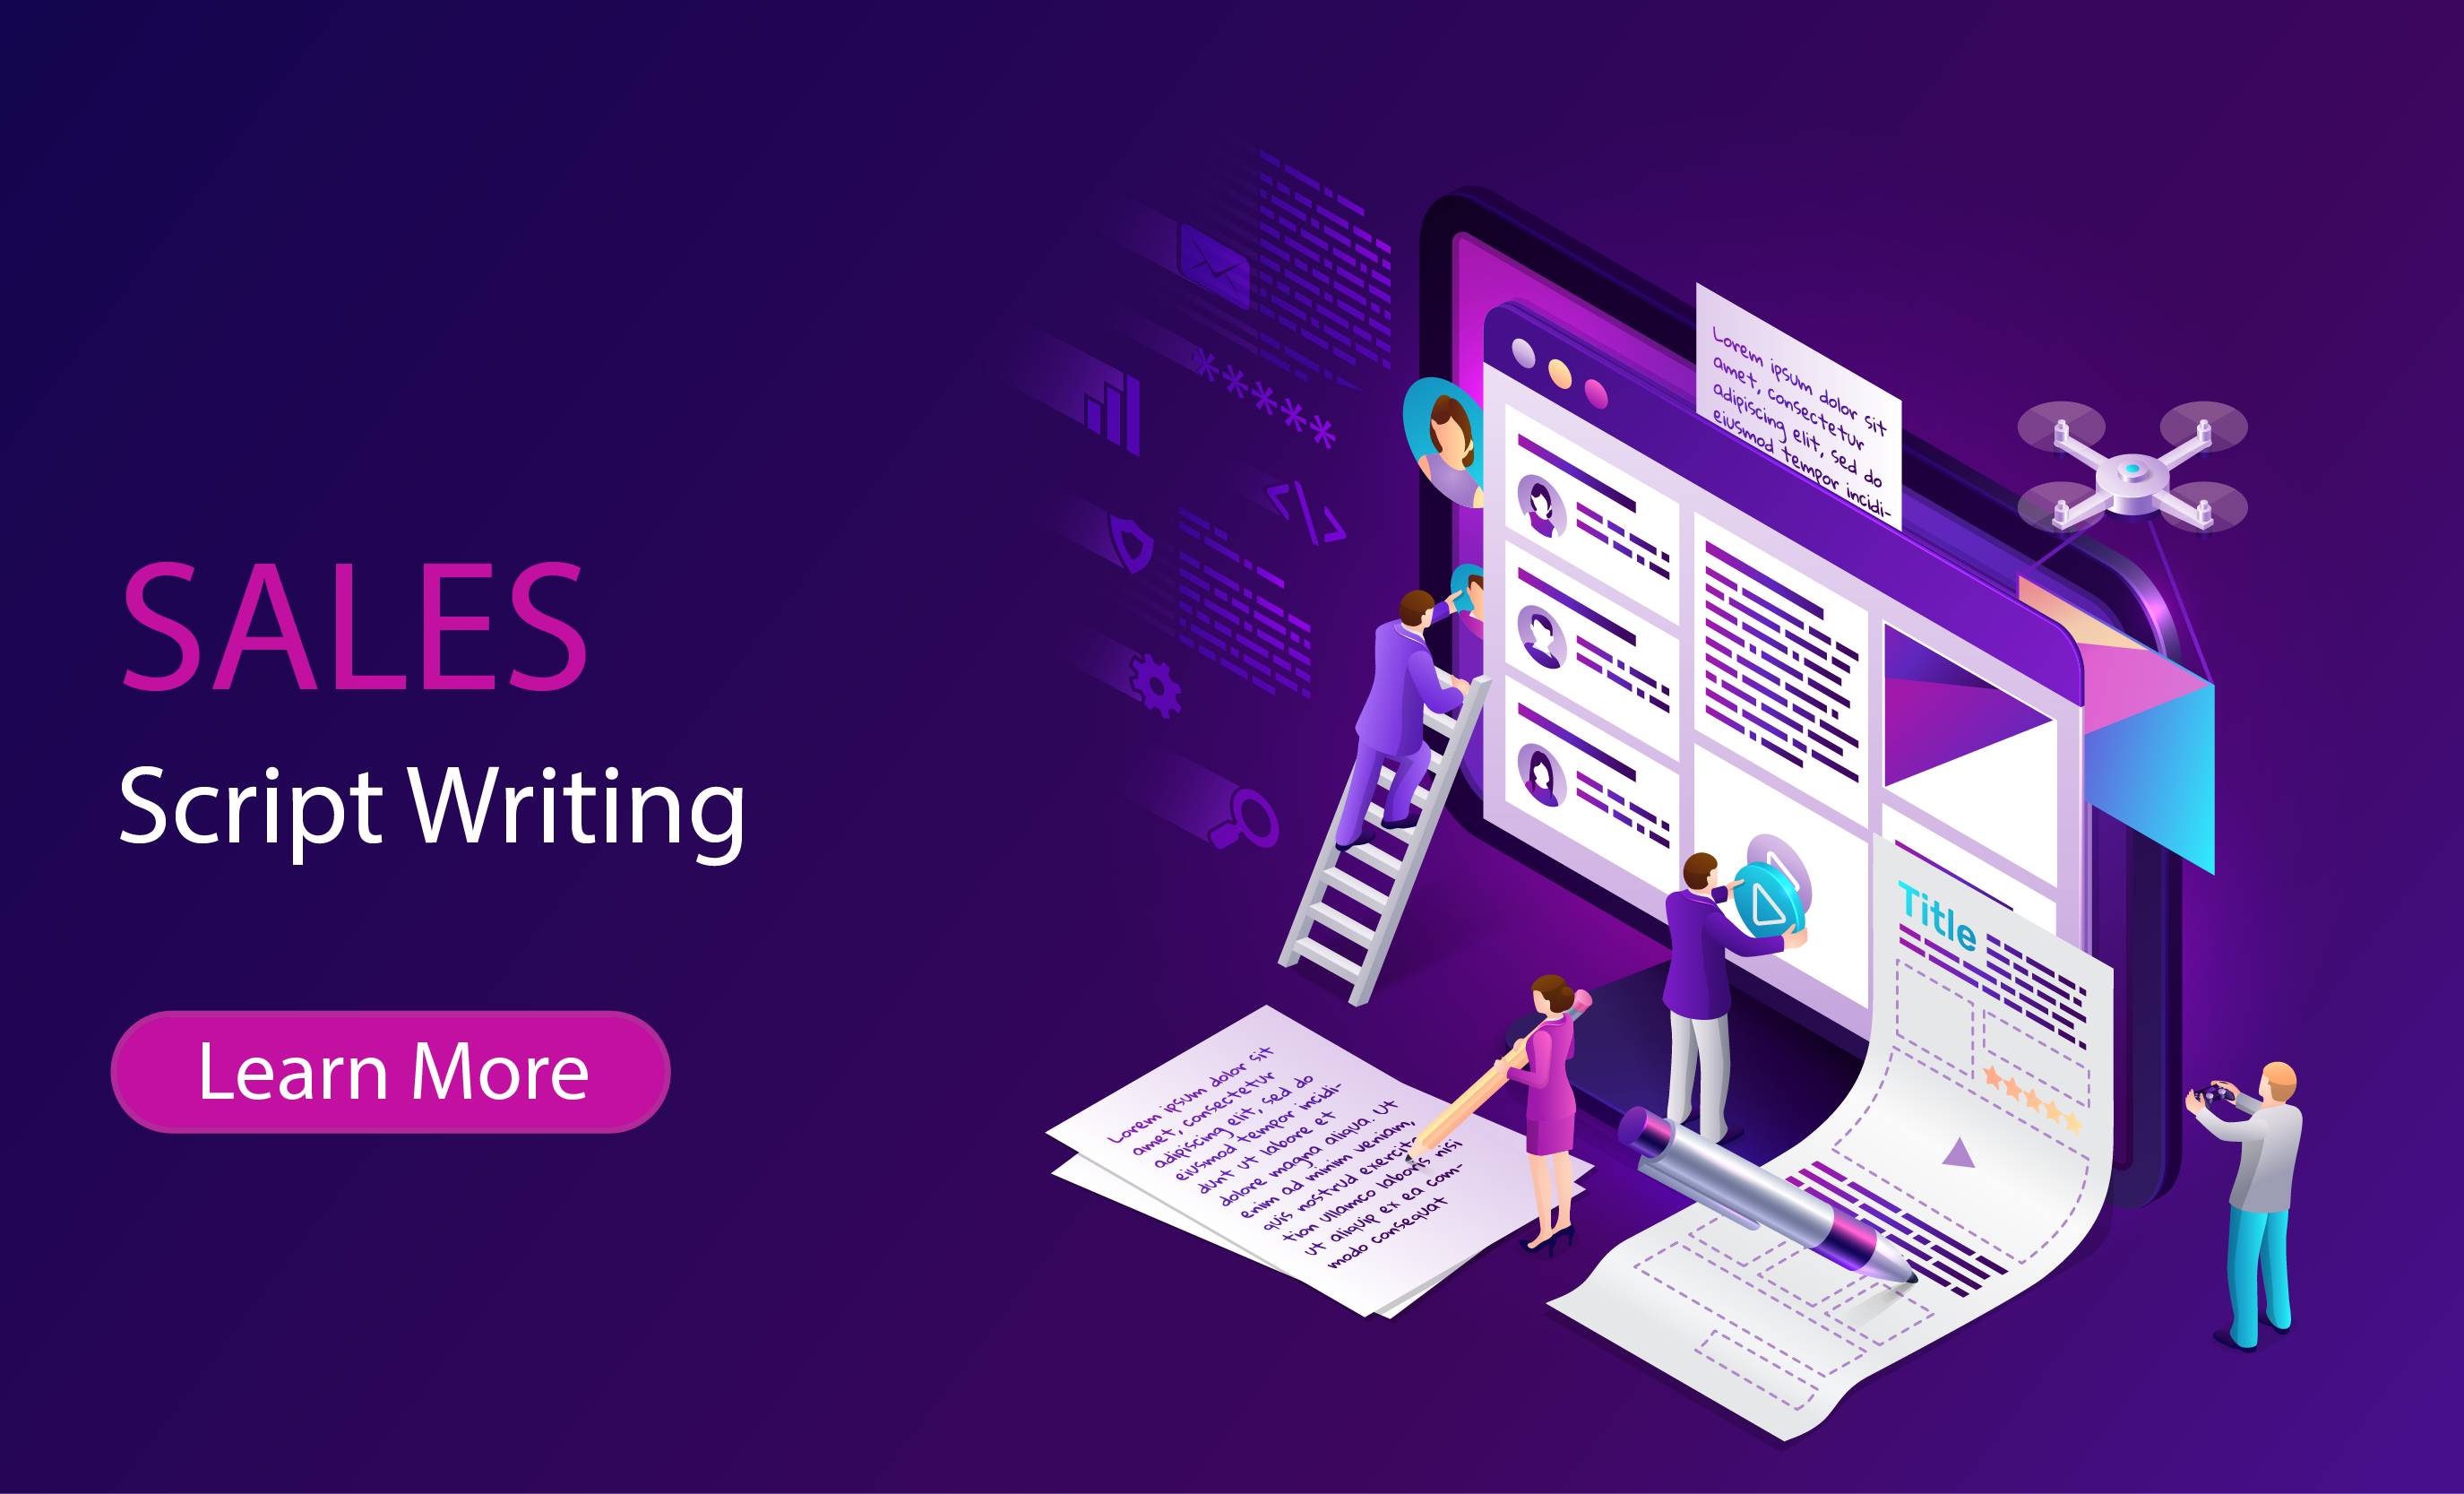 Sales Script Writing